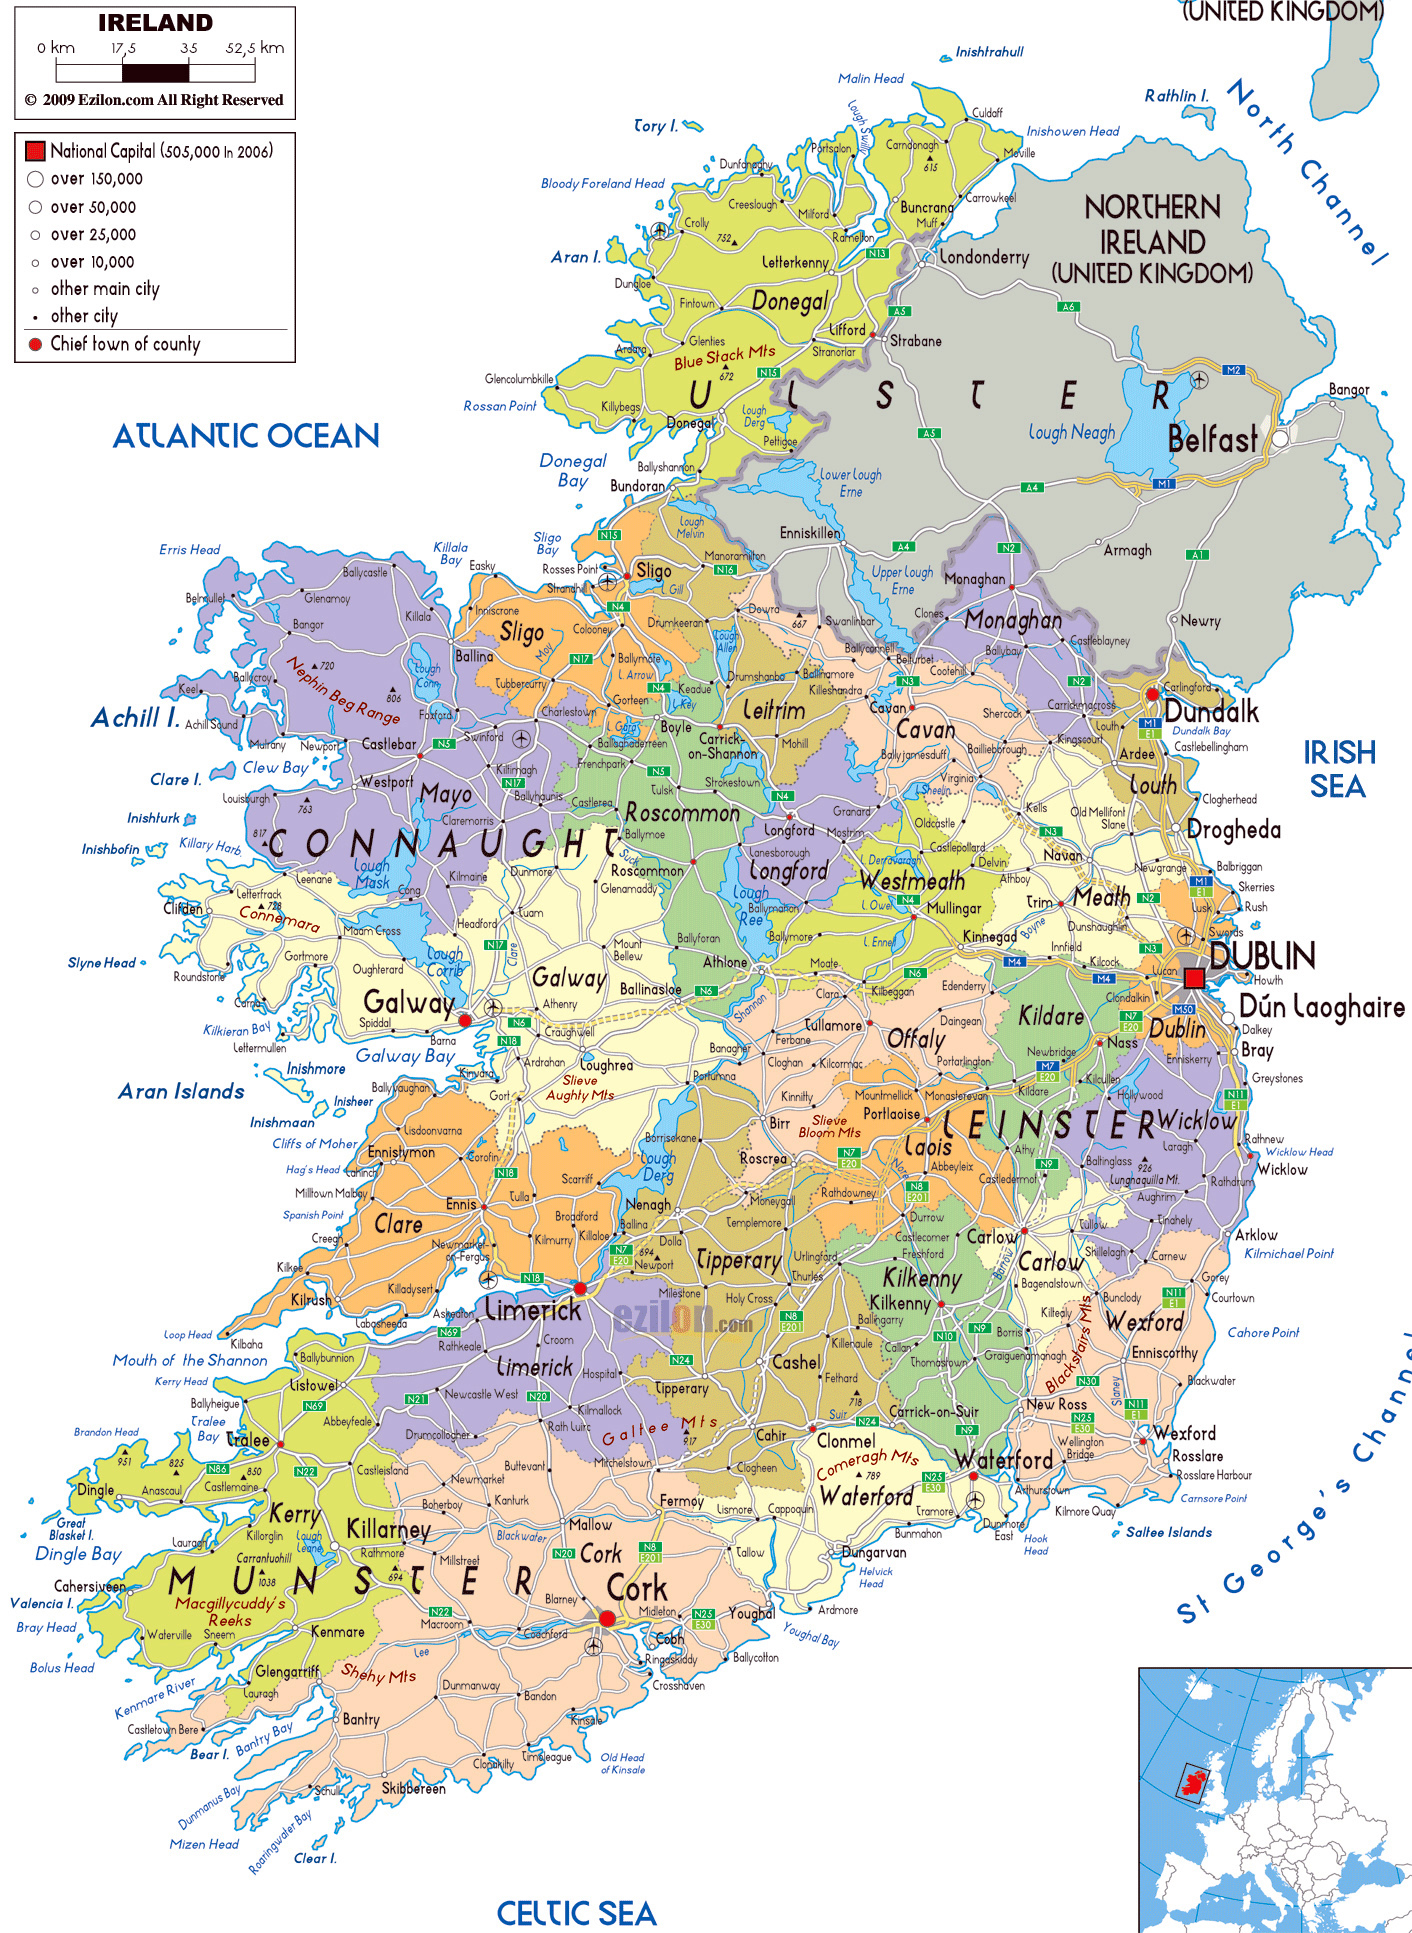 Map Of Ireland With Roads.Large Political And Administrative Map Of Ireland With Roads Cities